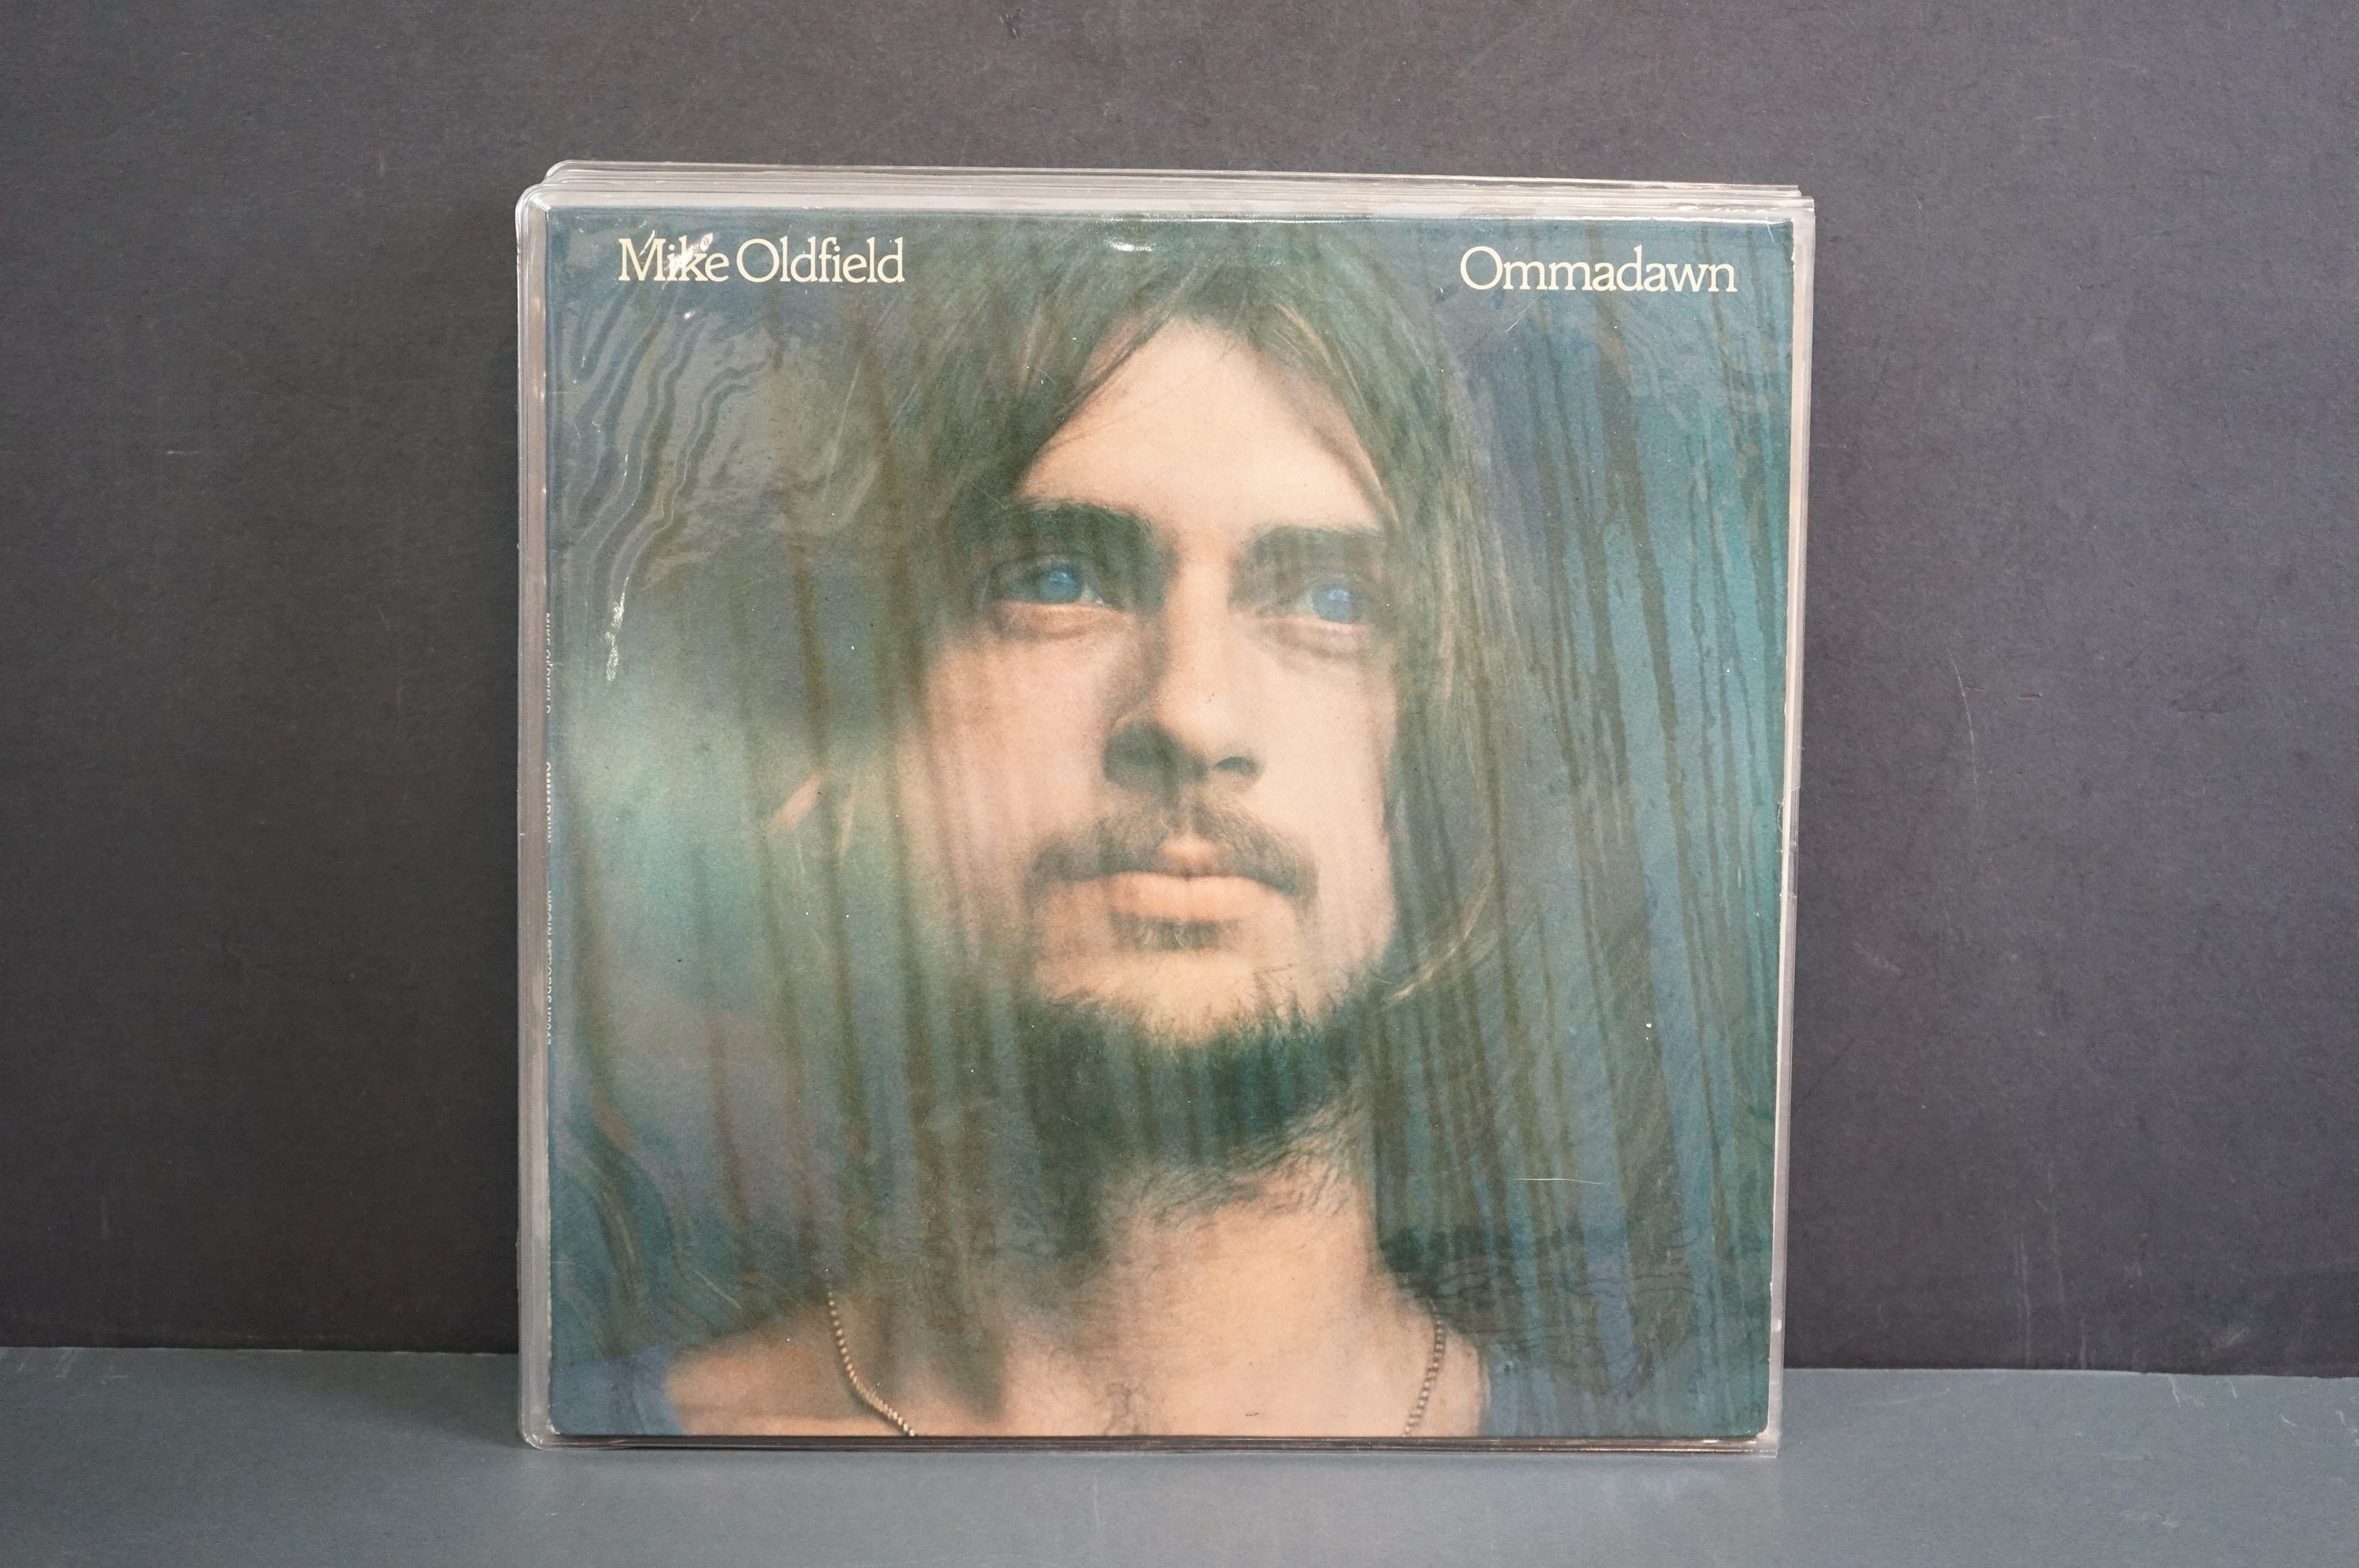 Vinyl - 14 Mike Oldfield LPs to include Tubular Bells, Five Miles Out, Best Of, Discovery etc, - Image 4 of 15